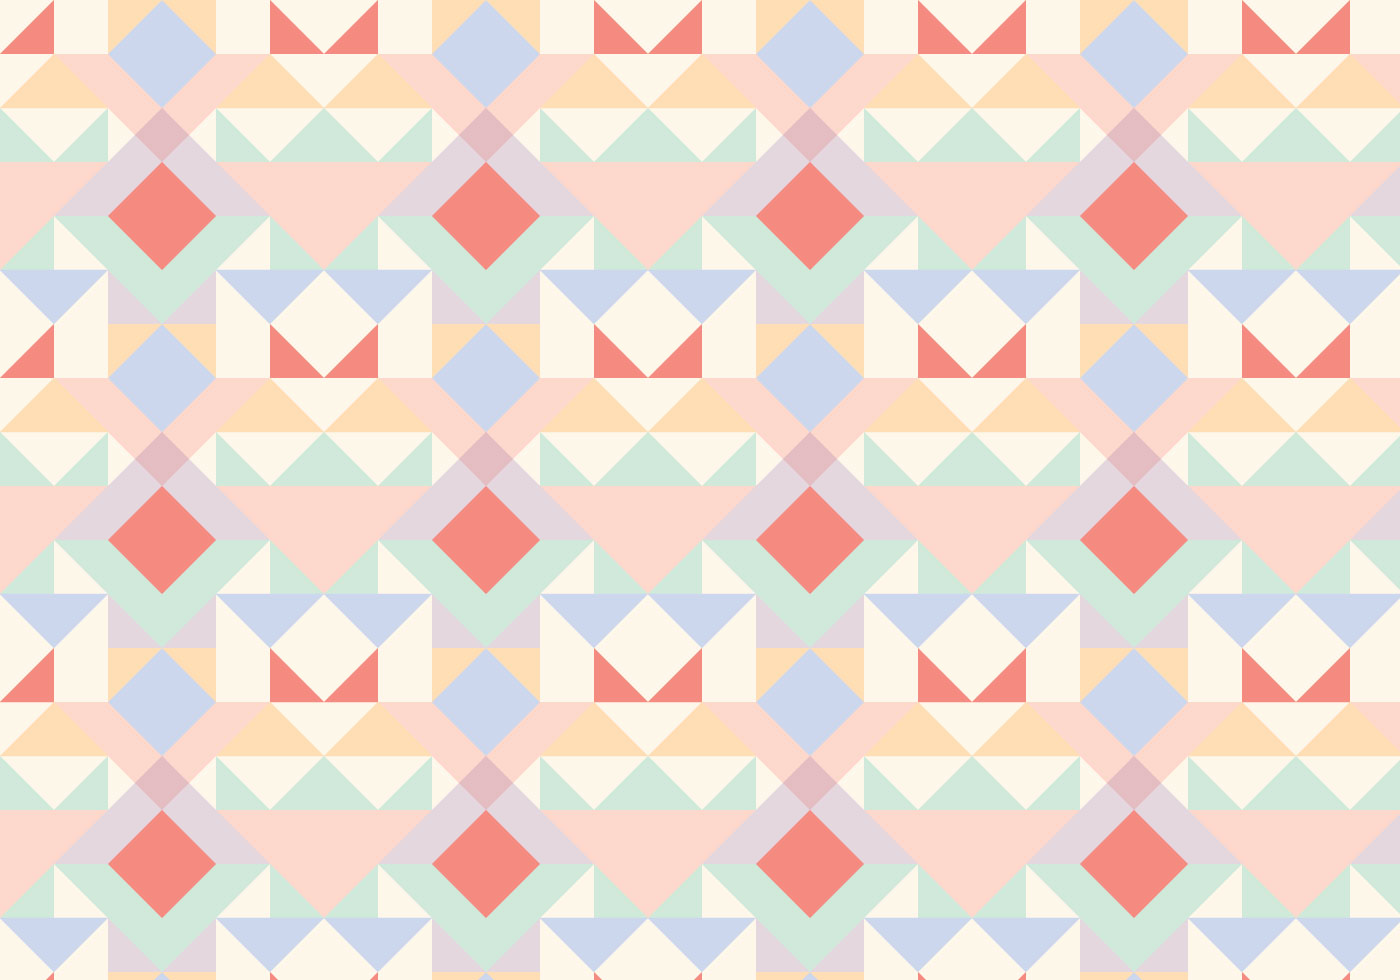 pastel geometric abstract pattern download free vector art deco floral pattern vector art nouveau patterns vector